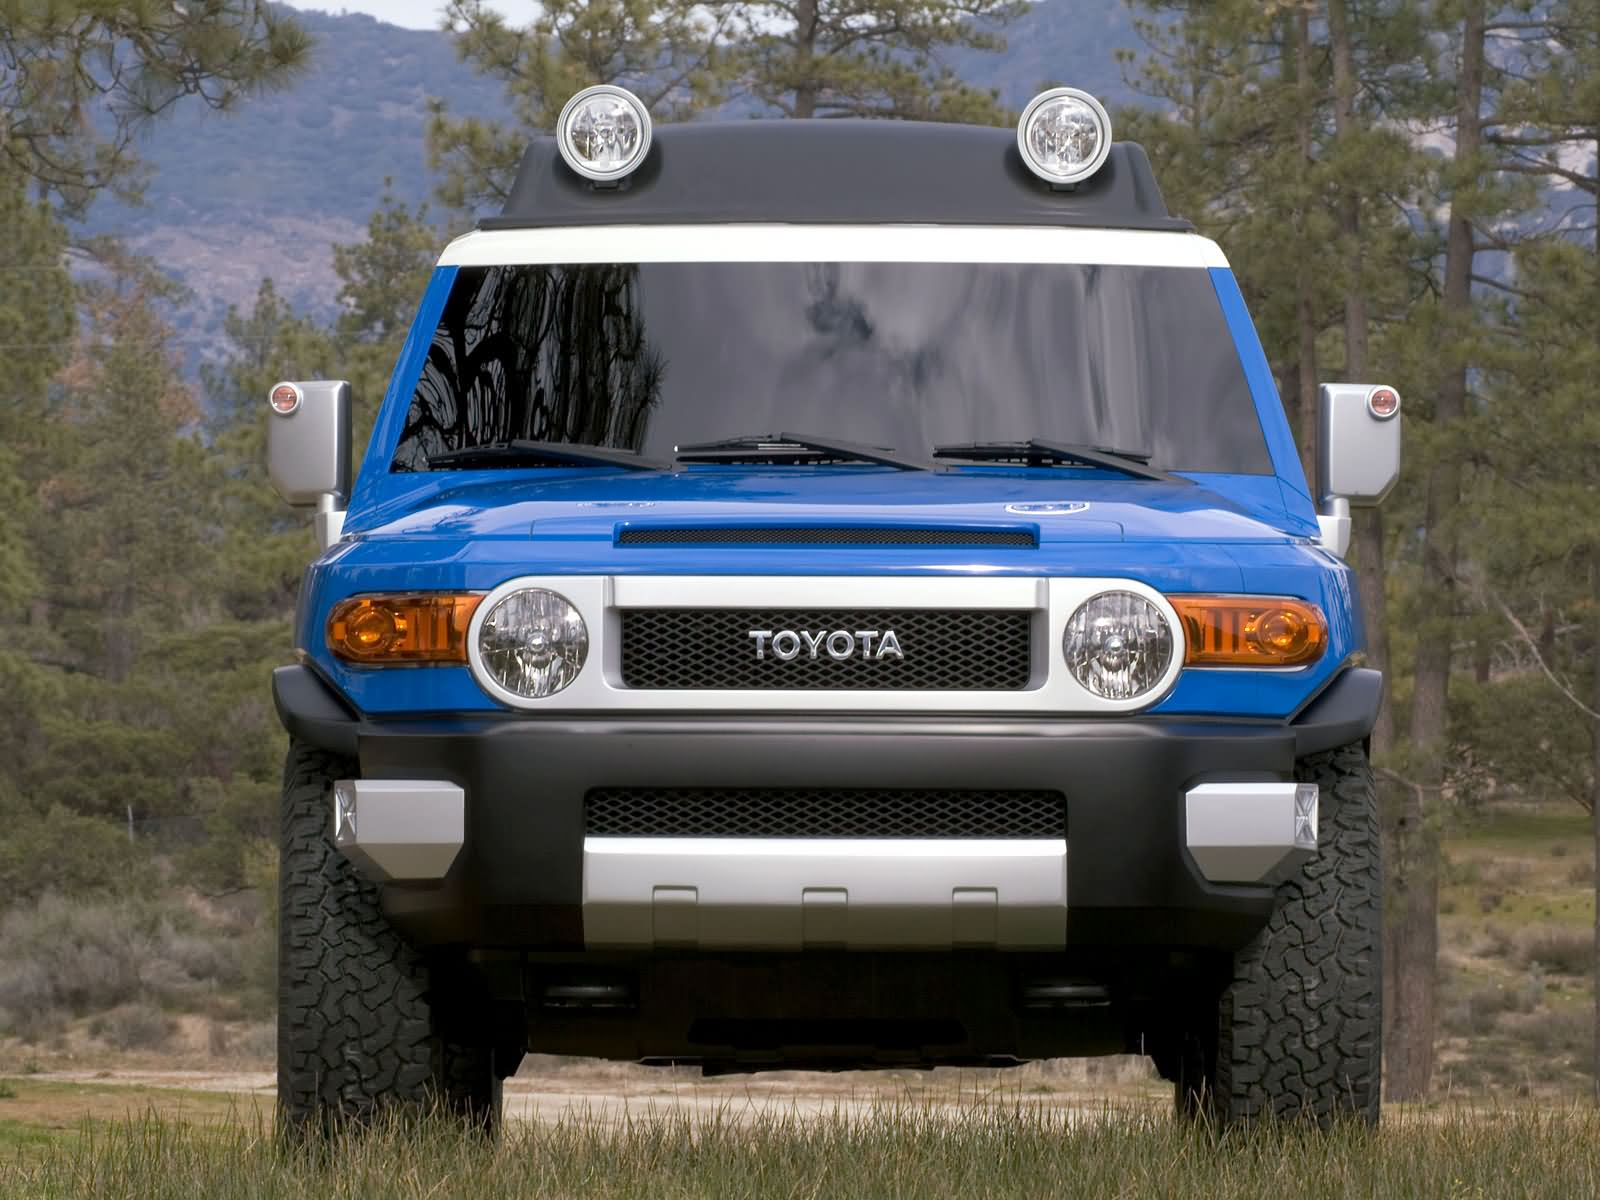 Toyota FJ Cruiser photo 21016